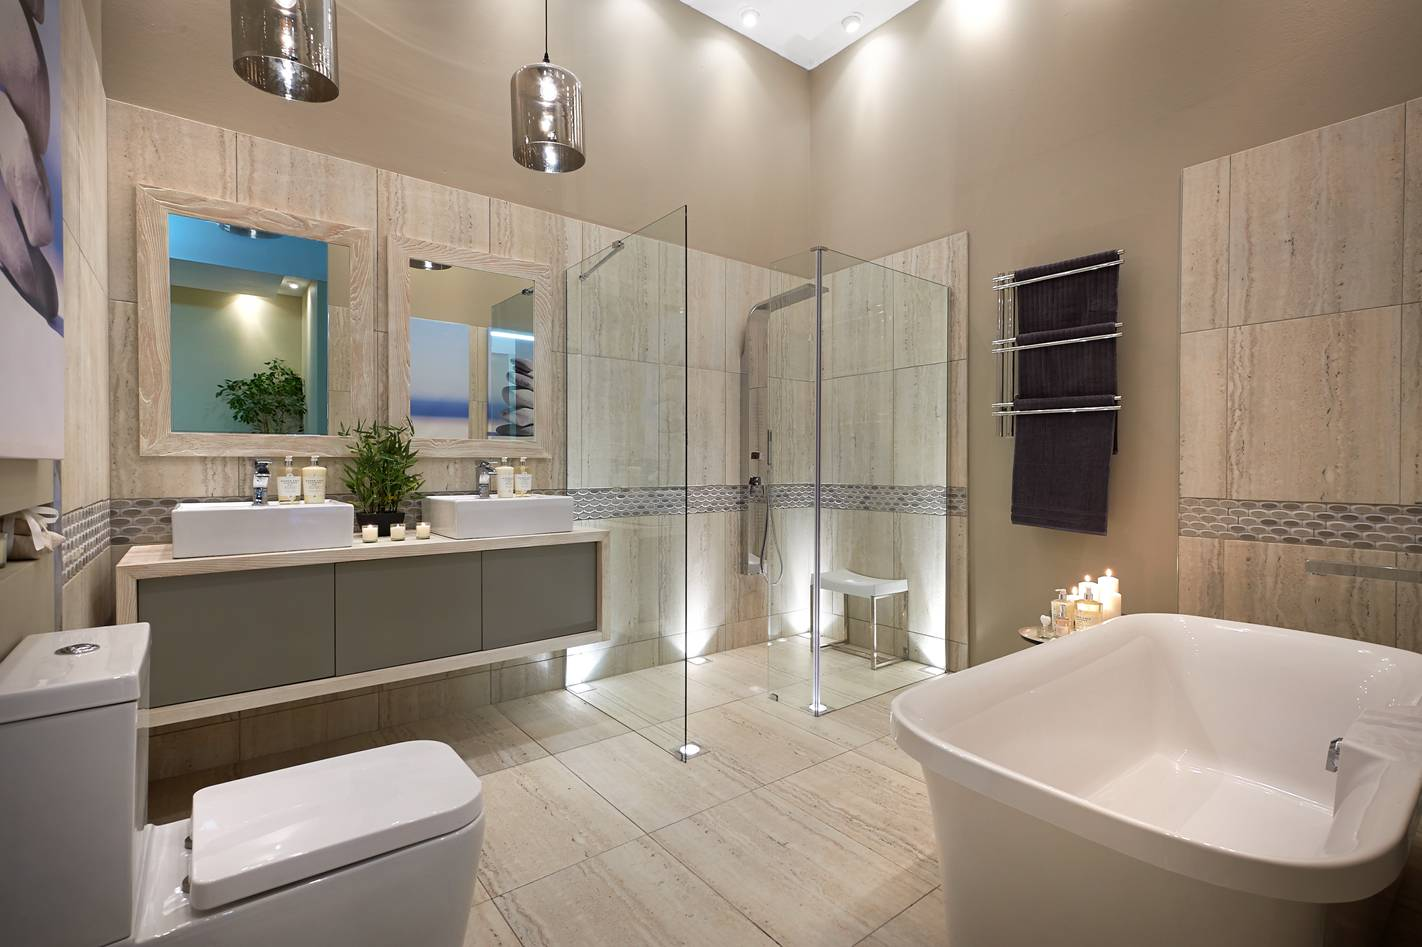 Top design tips for family bathrooms for The best bathroom design